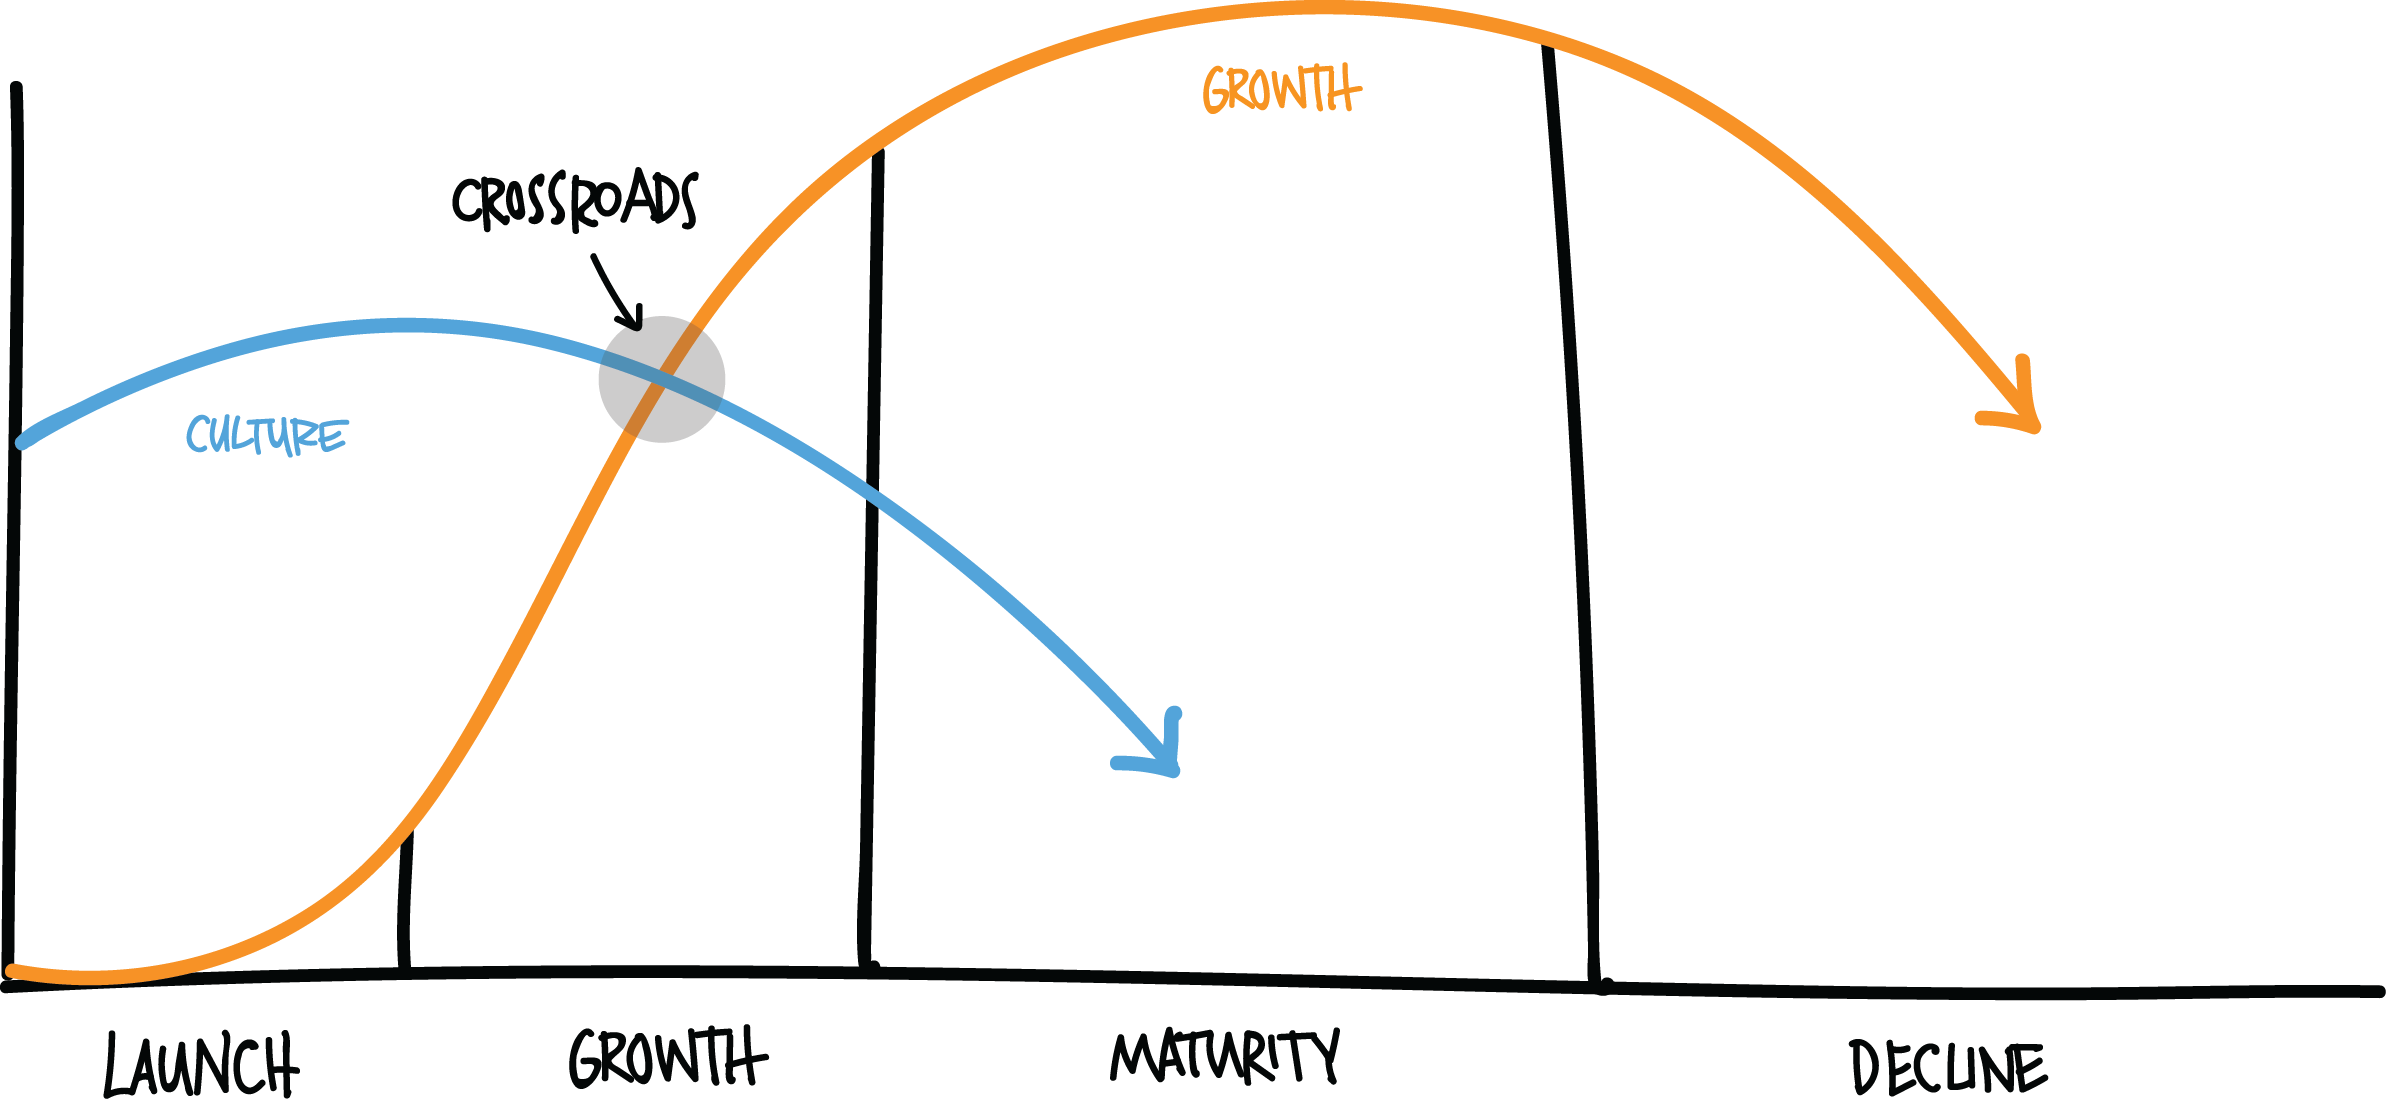 company culture growth curve